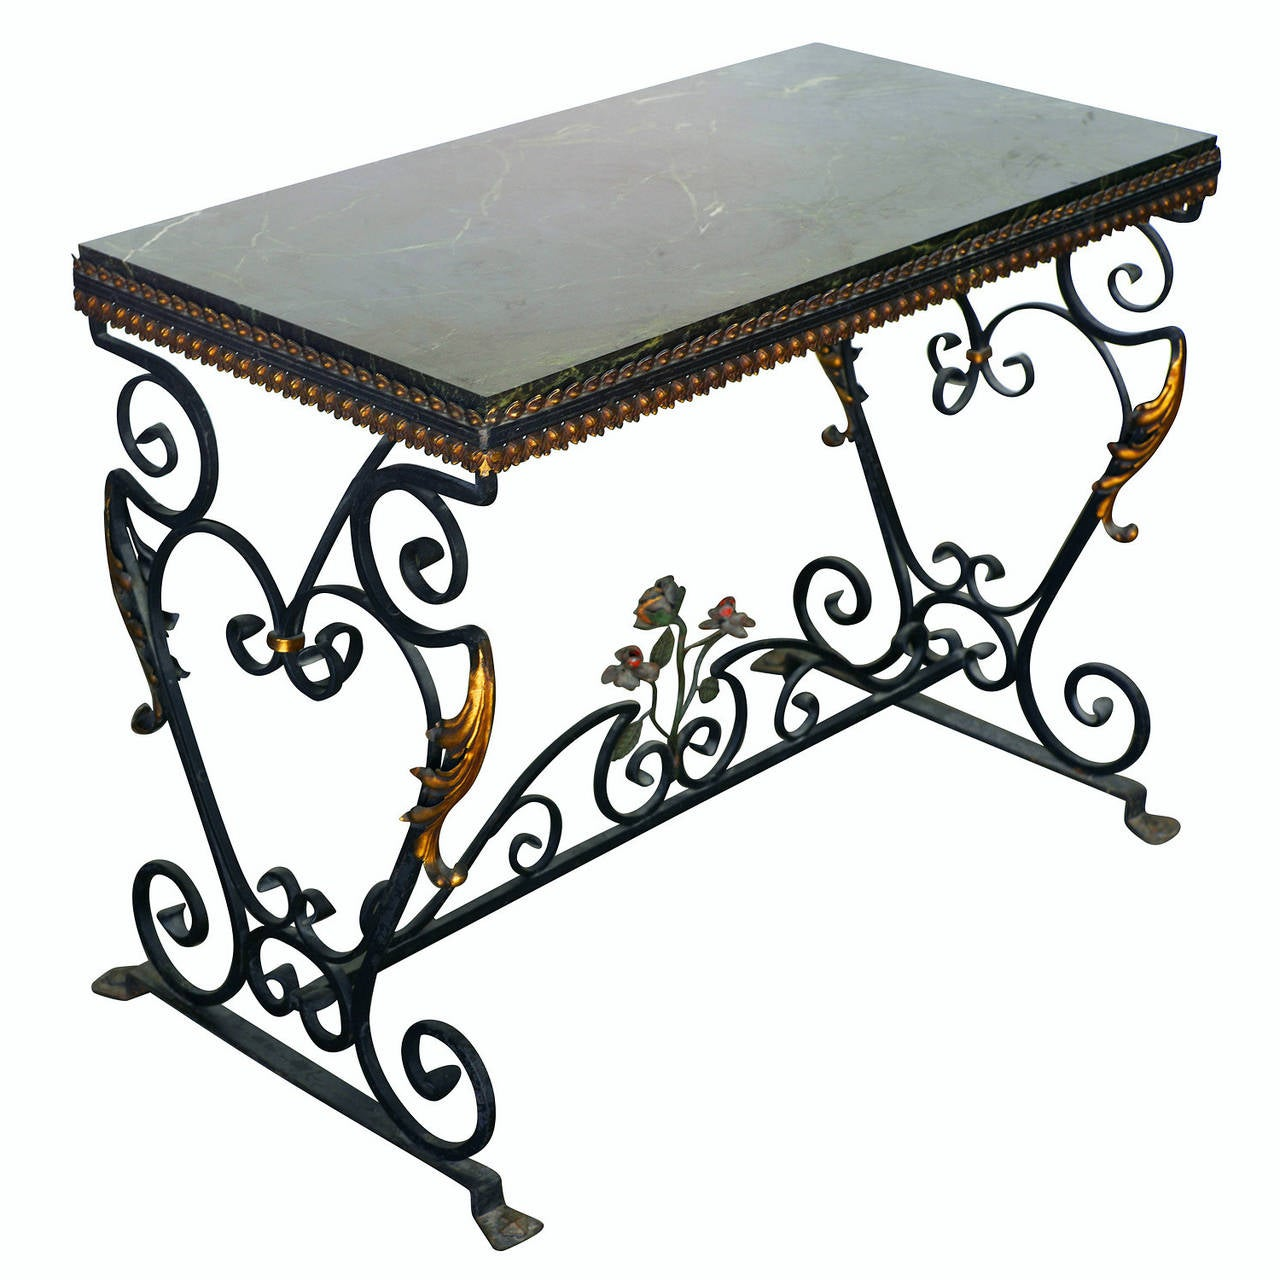 Stone top wrought iron antique console table late 19thearly 20th italian wrought iron console table with st laurent marble top geotapseo Gallery